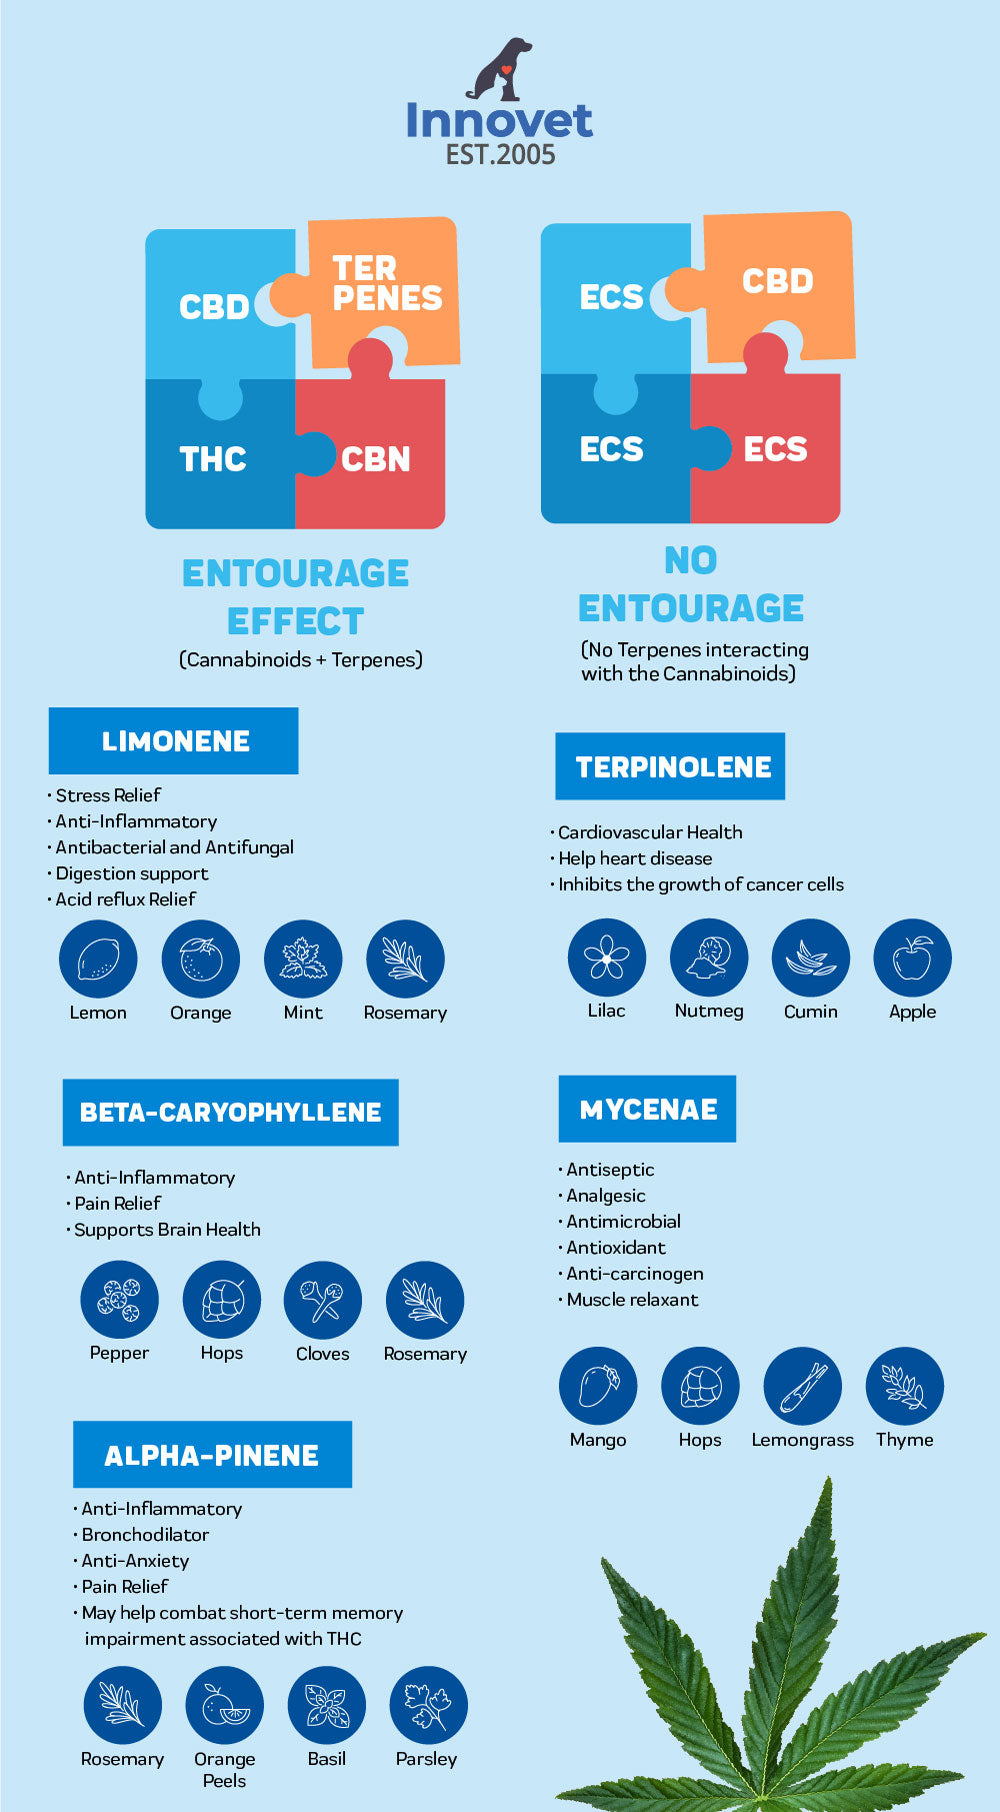 What are terpenes and what is entourage effect